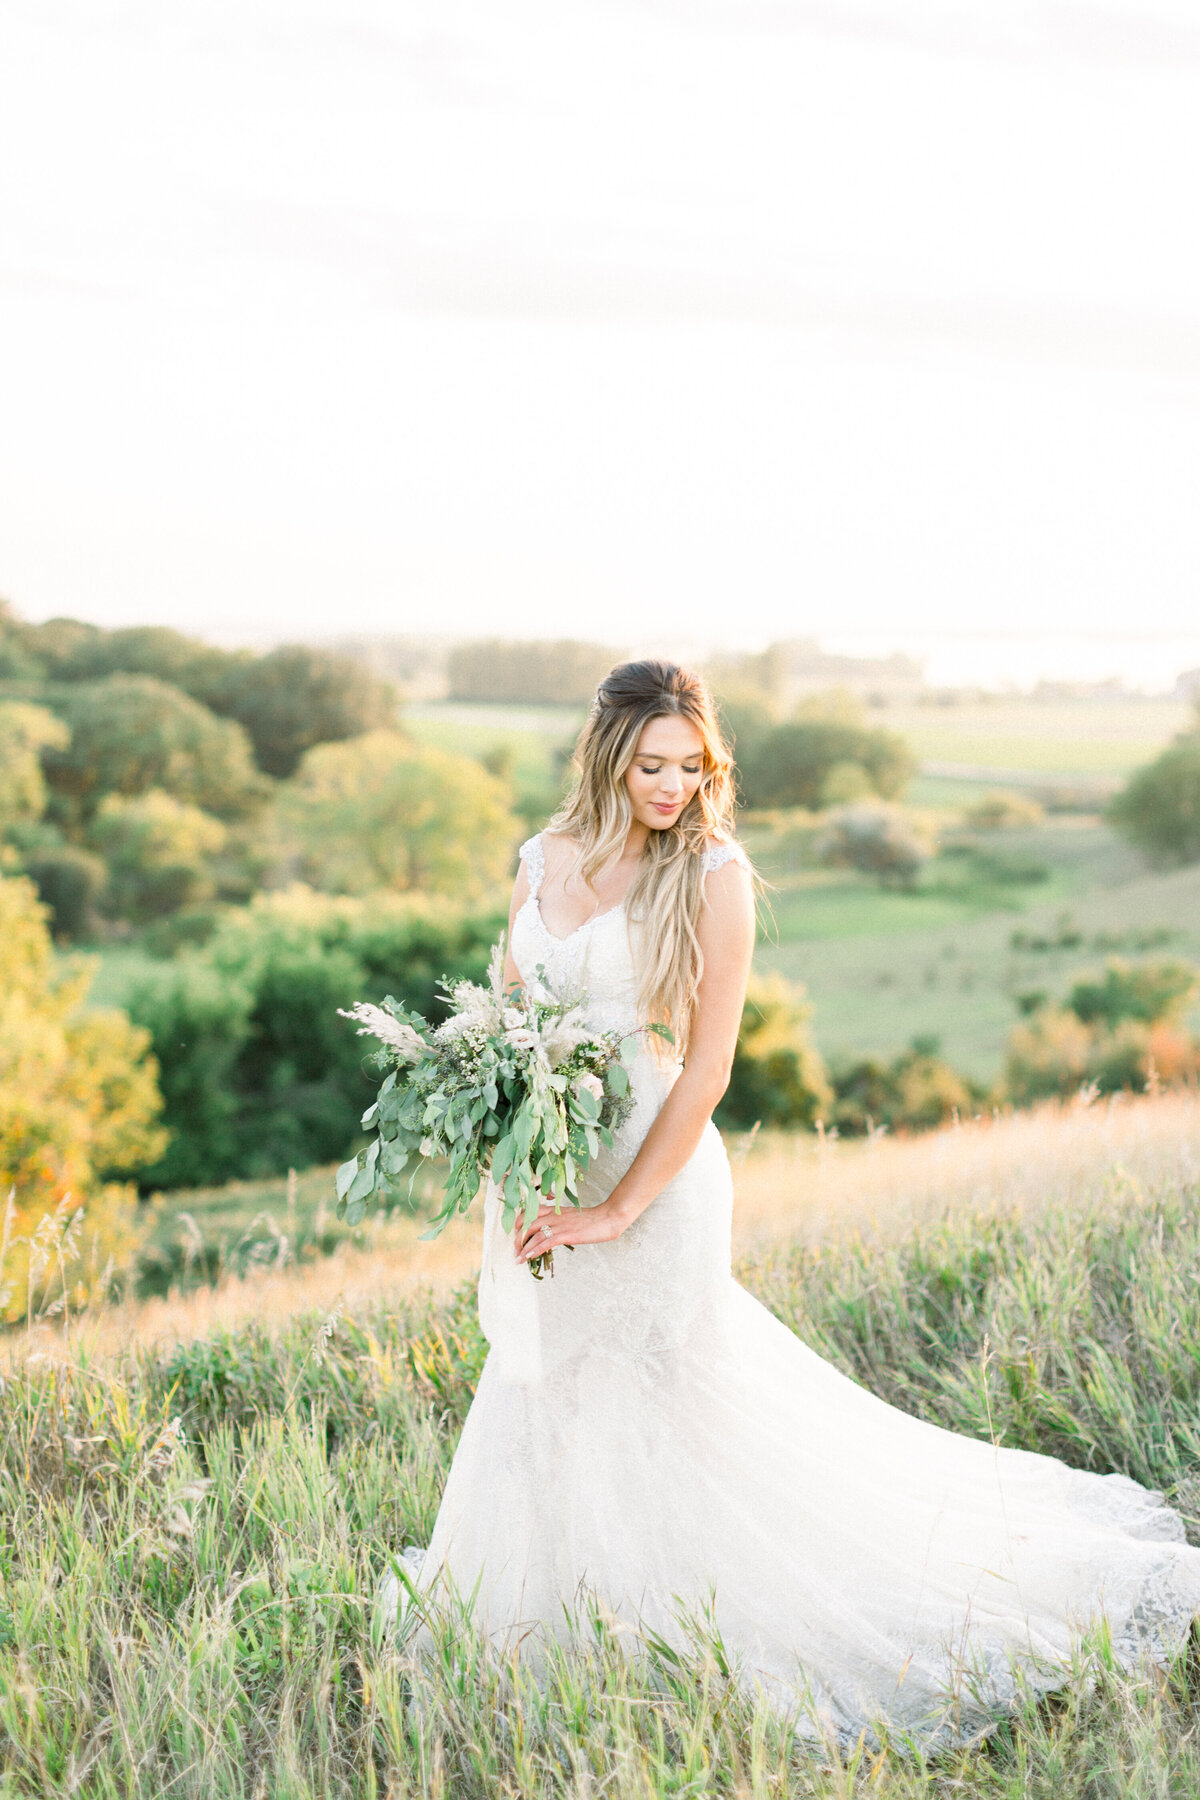 Minnesota Bride, Minnesota wedding photographer, Minneapolis wedding photographer, Wedding Dress, trish Allison photography, trish allison photography weddings, Light and airy photographer, Minnesota photogrpaher light and airy